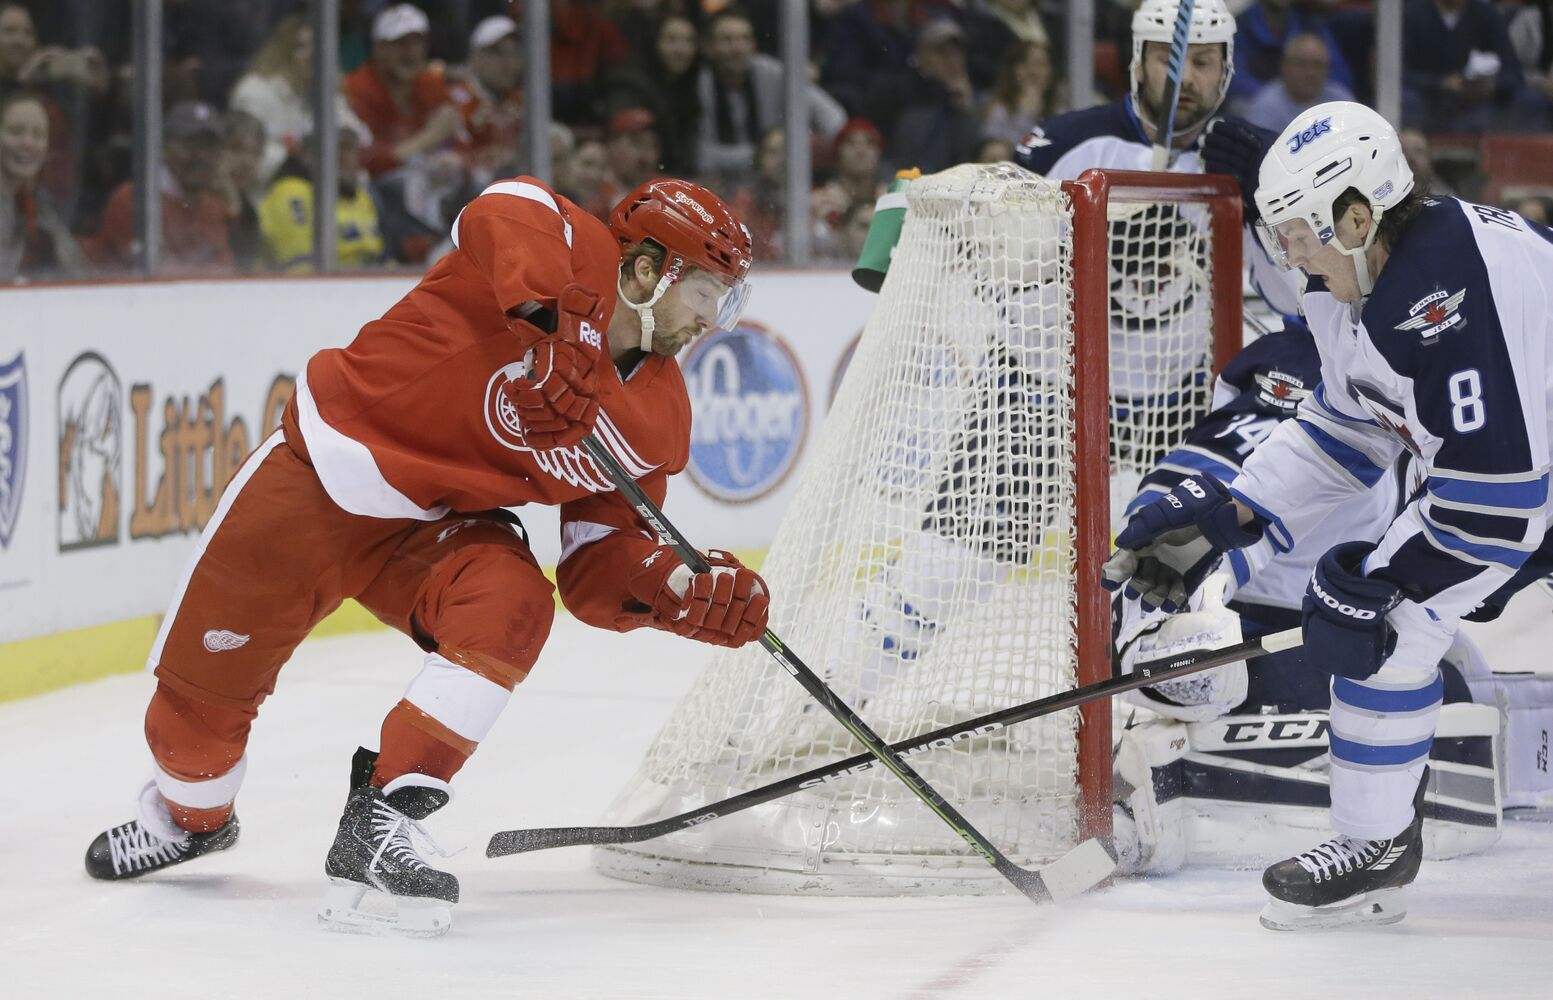 Darren Helm attempts a wrap-around on Jets goalie Michael Hutchinson.  (Carlos Osorio / The Associated Press)